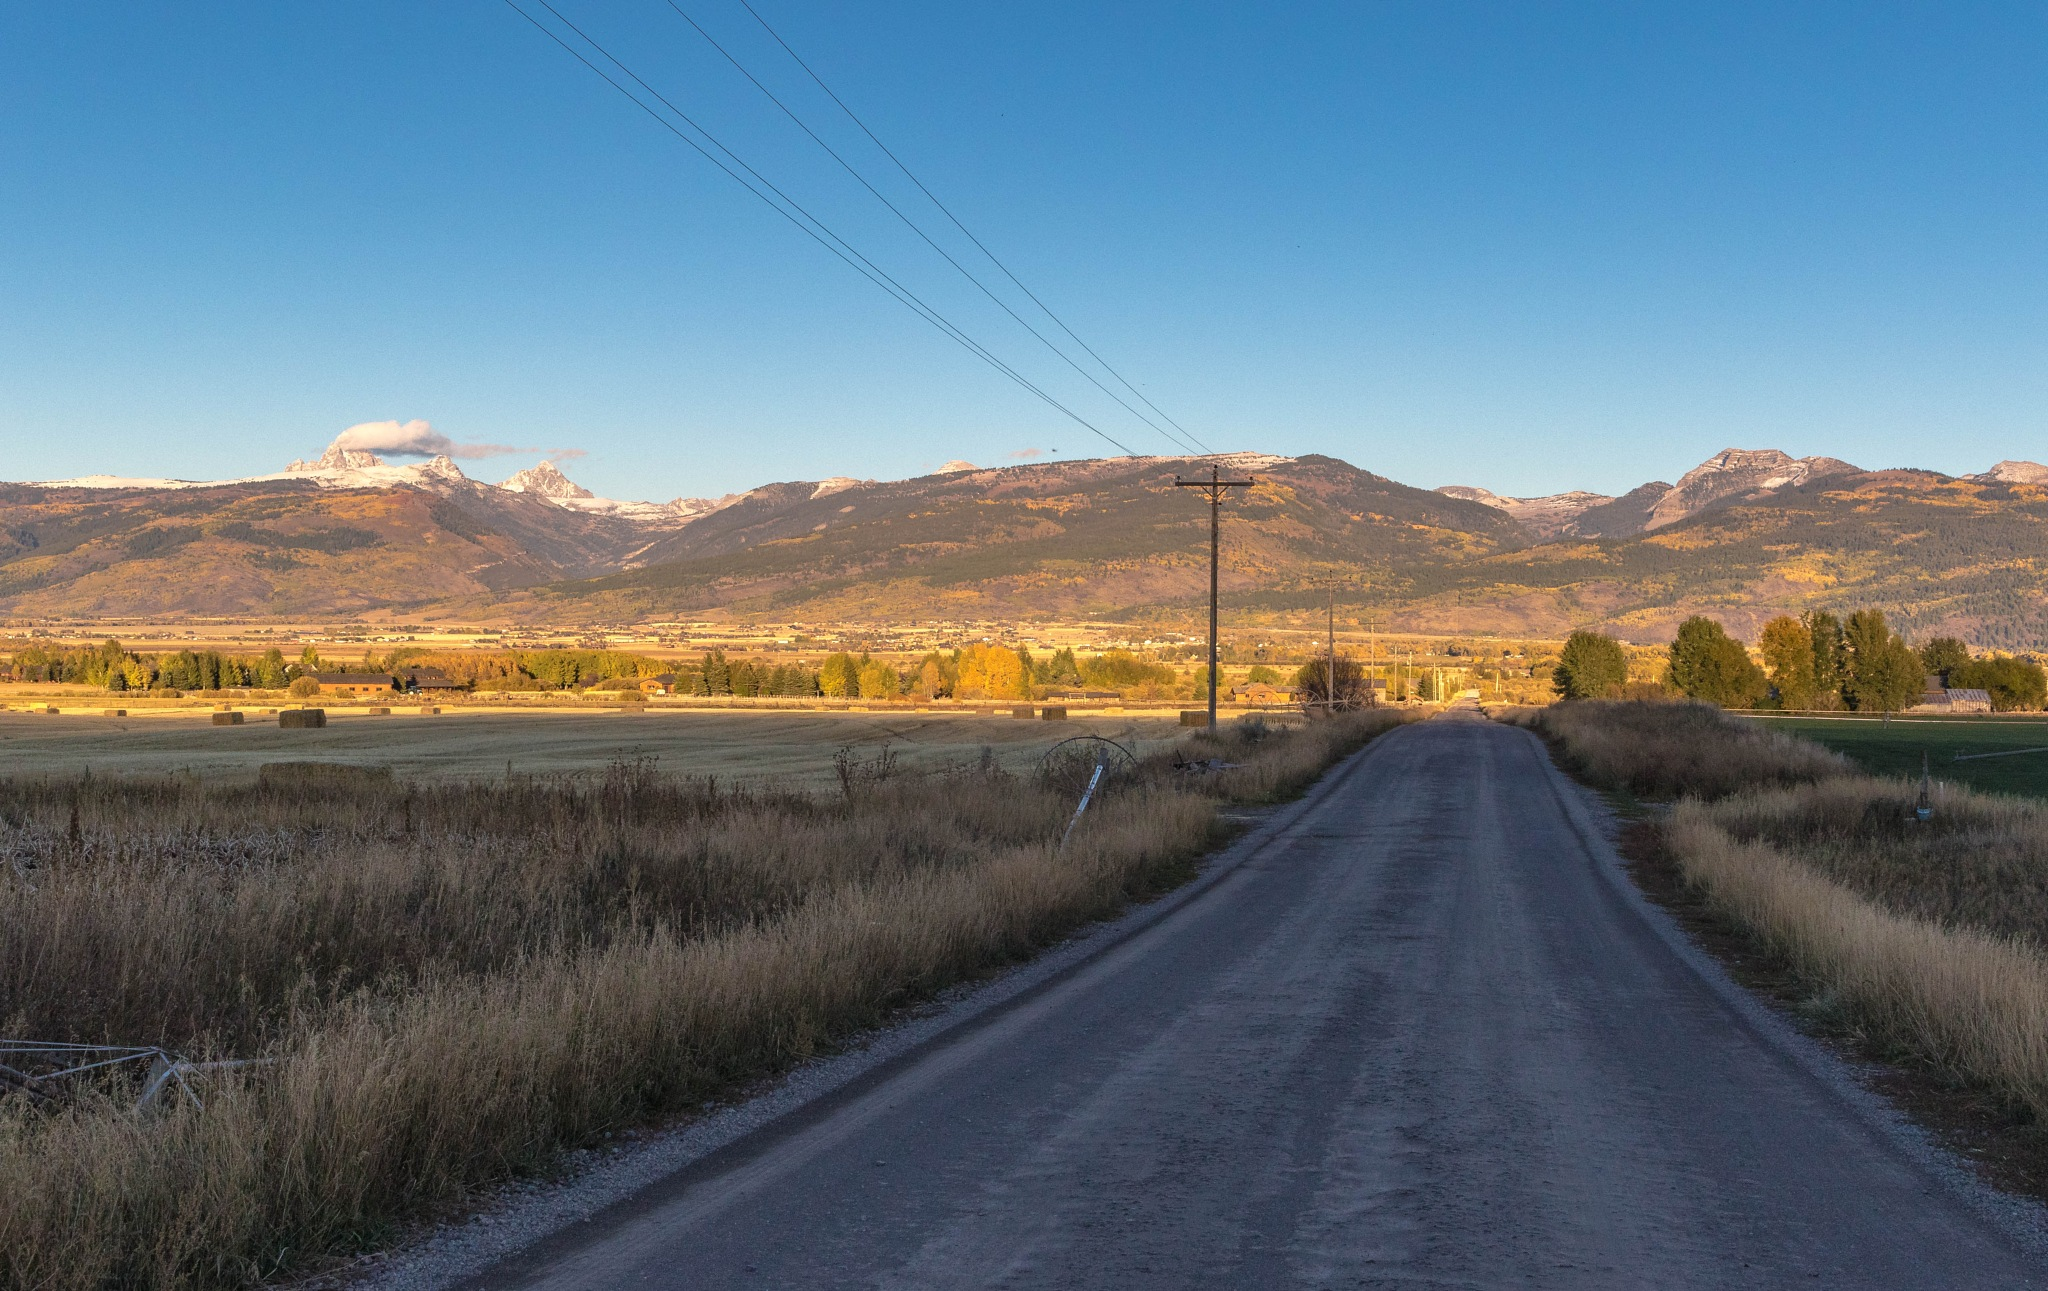 My Valley by drchad480